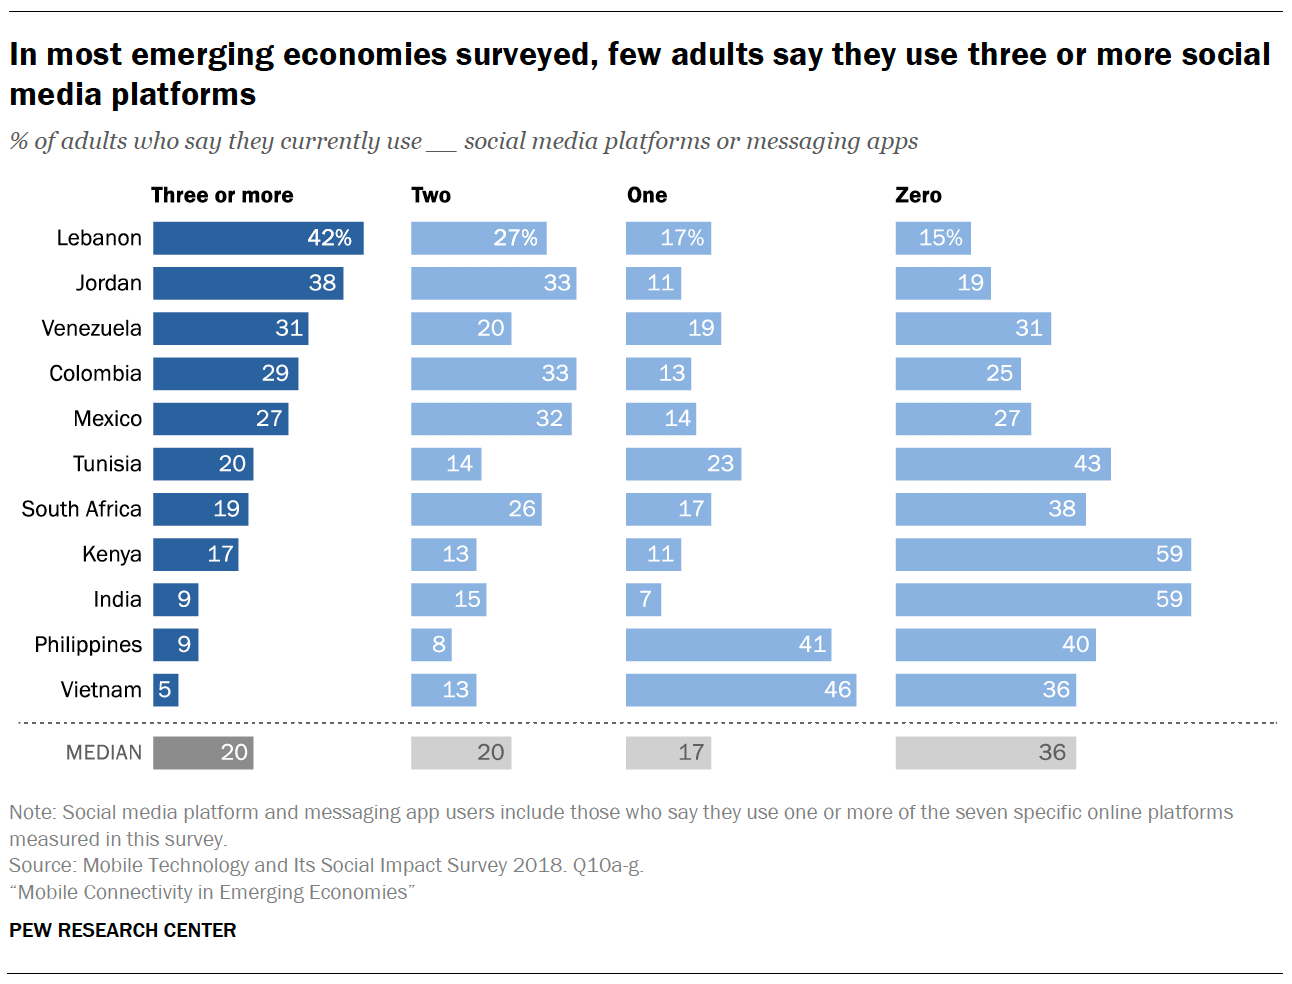 In Most Emerging Economies Surveyed Few Adults Say They Use Three Or More Social Media